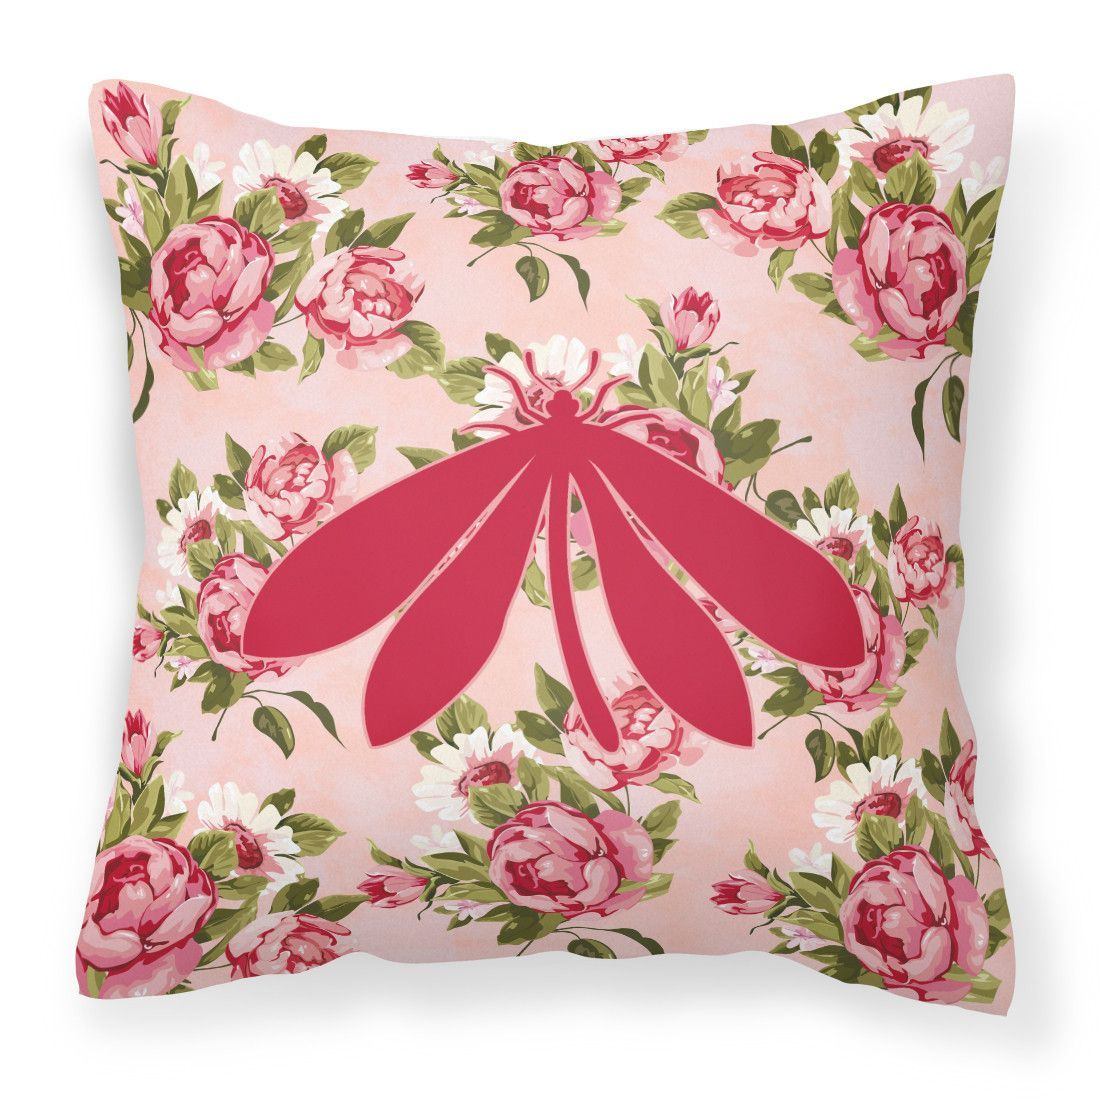 vintage sheets shabby of chic size cases pillowcase covers pillow pillows full pink floral